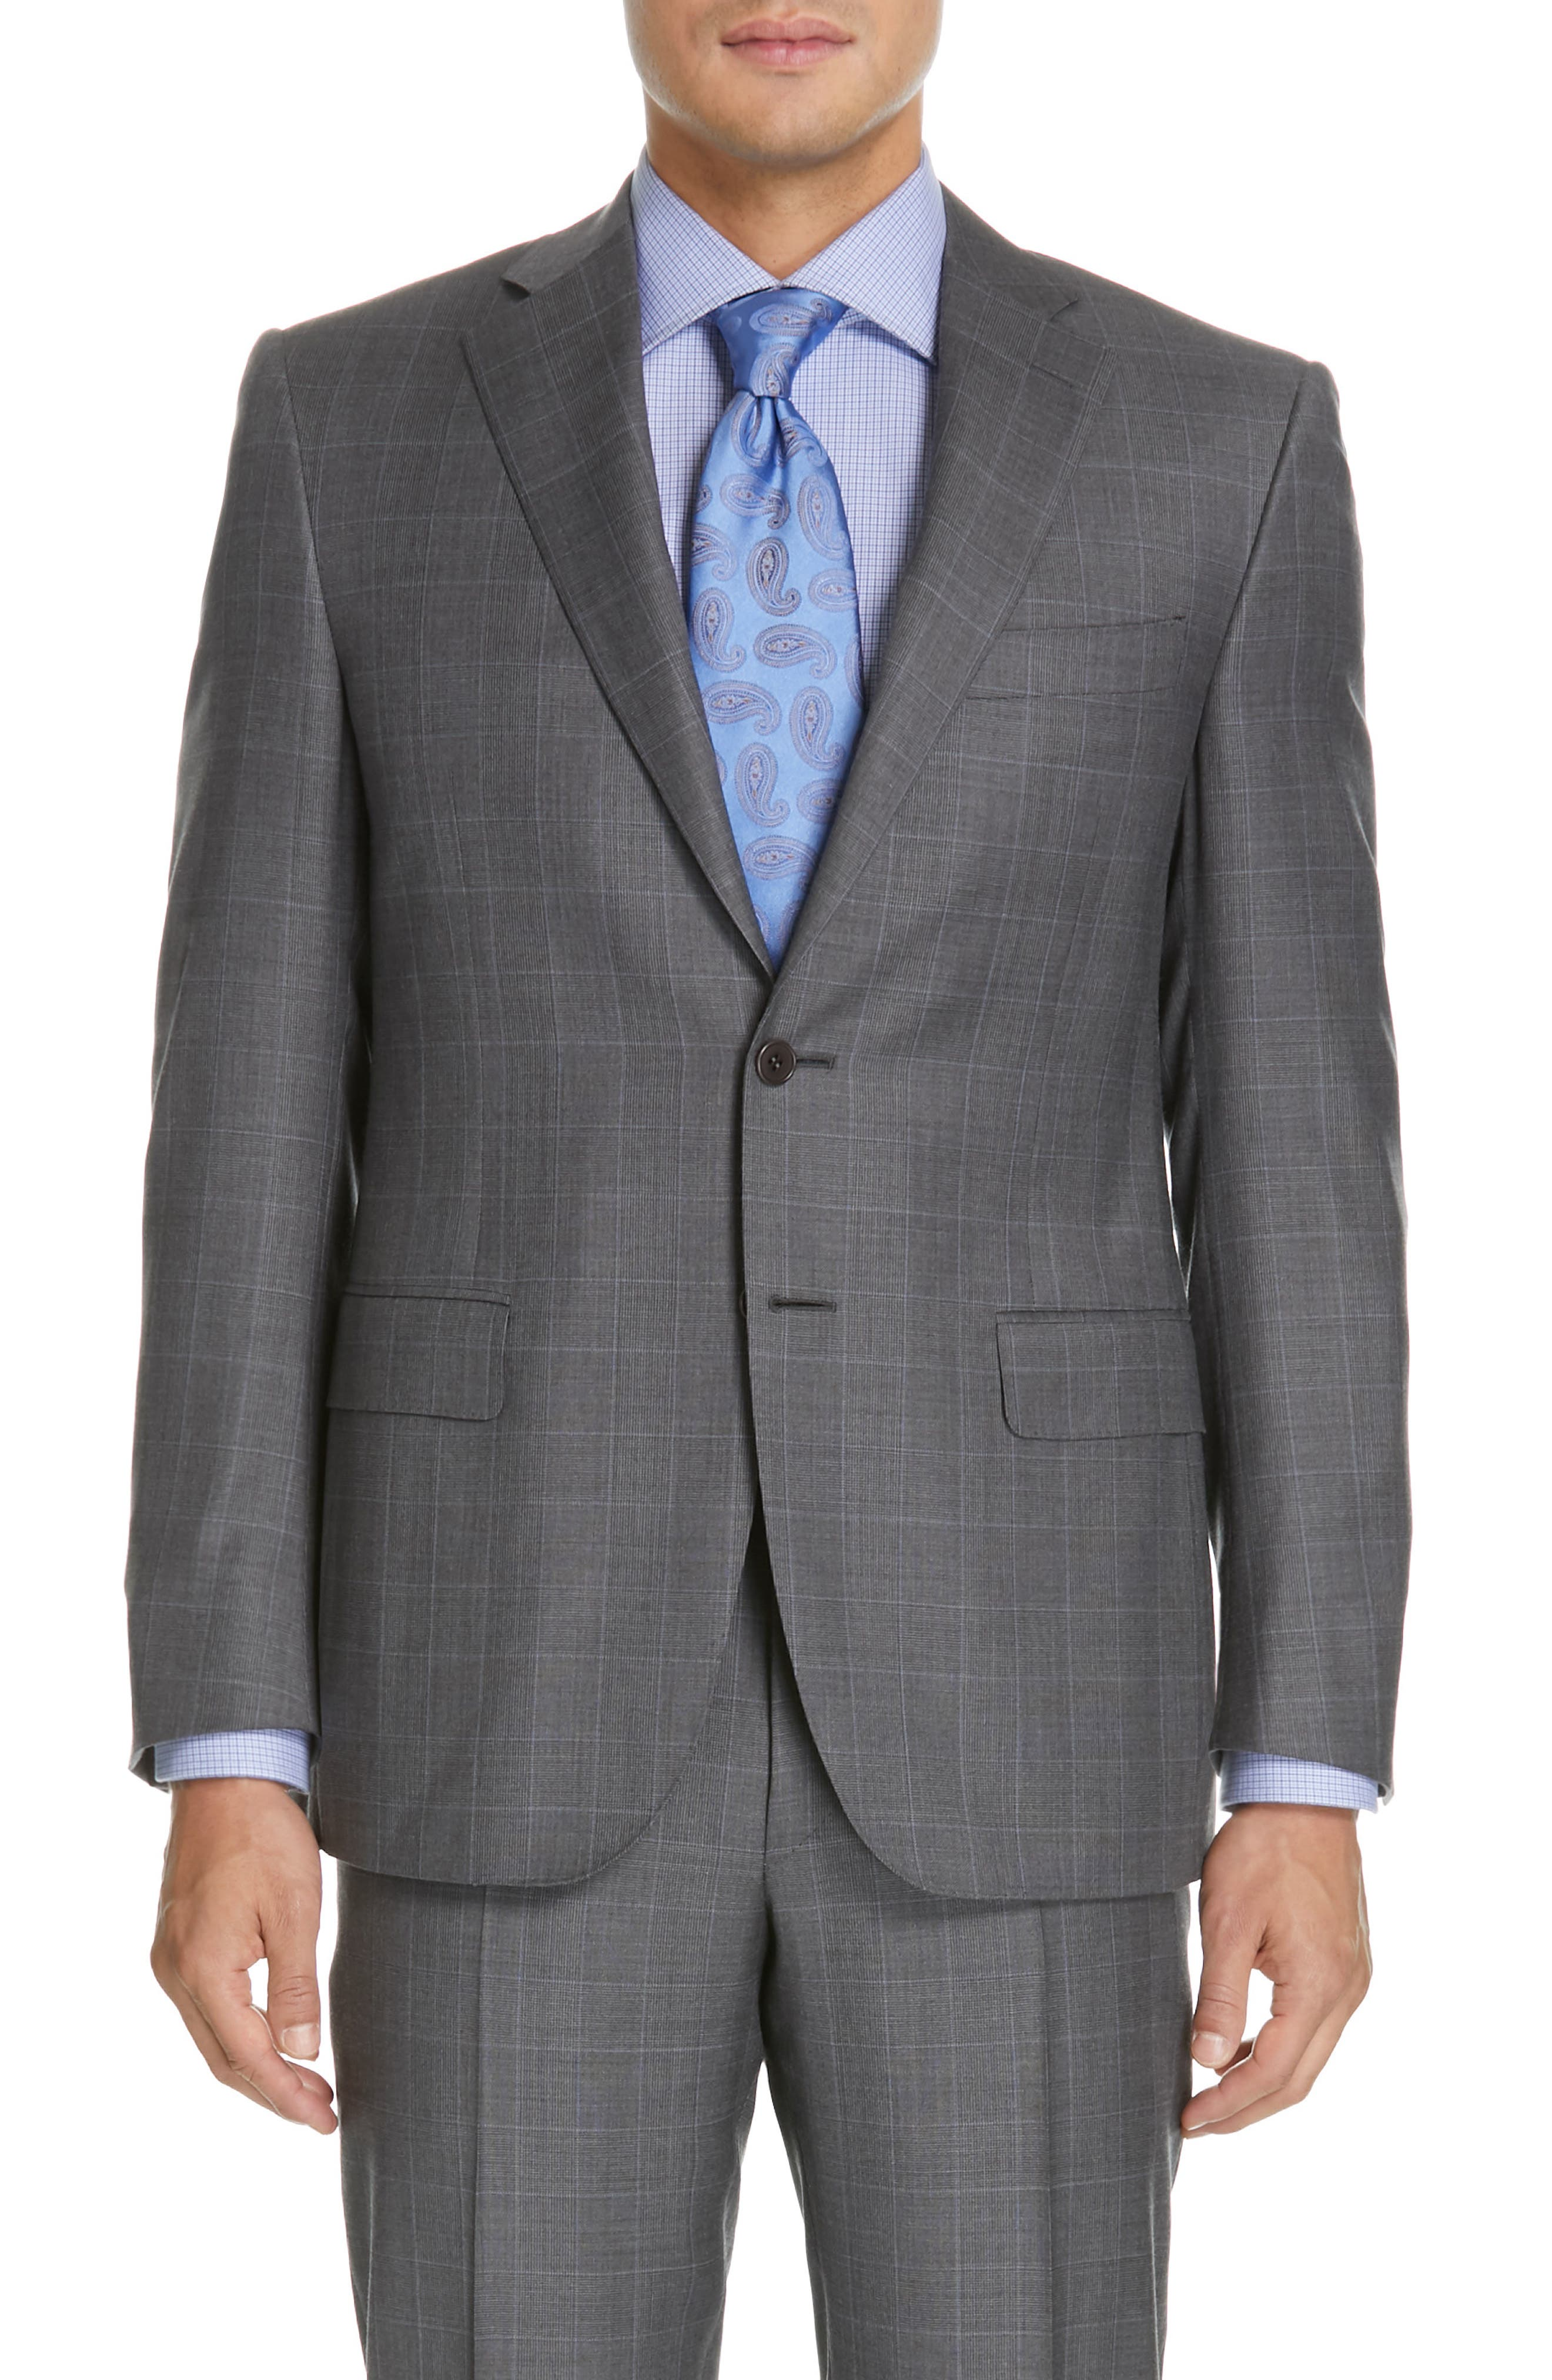 CANALI, Sienna Classic Fit Plaid Wool Suit, Alternate thumbnail 5, color, GREY